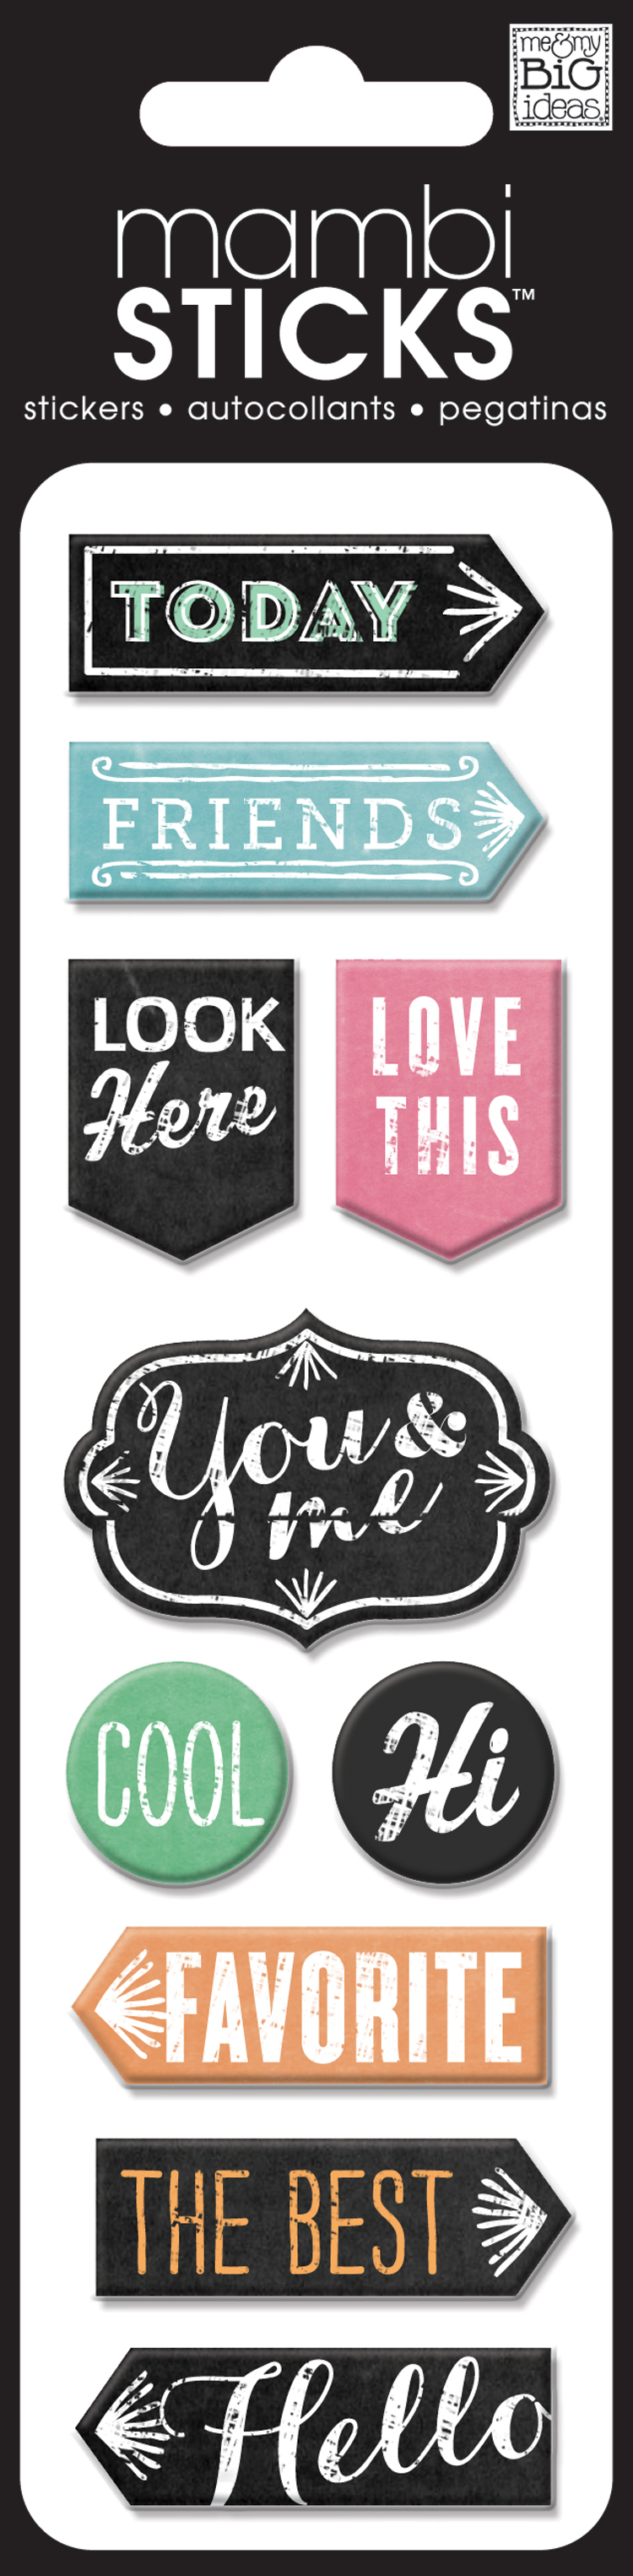 Puffy mambiSTICK stickers that have cute sayings.